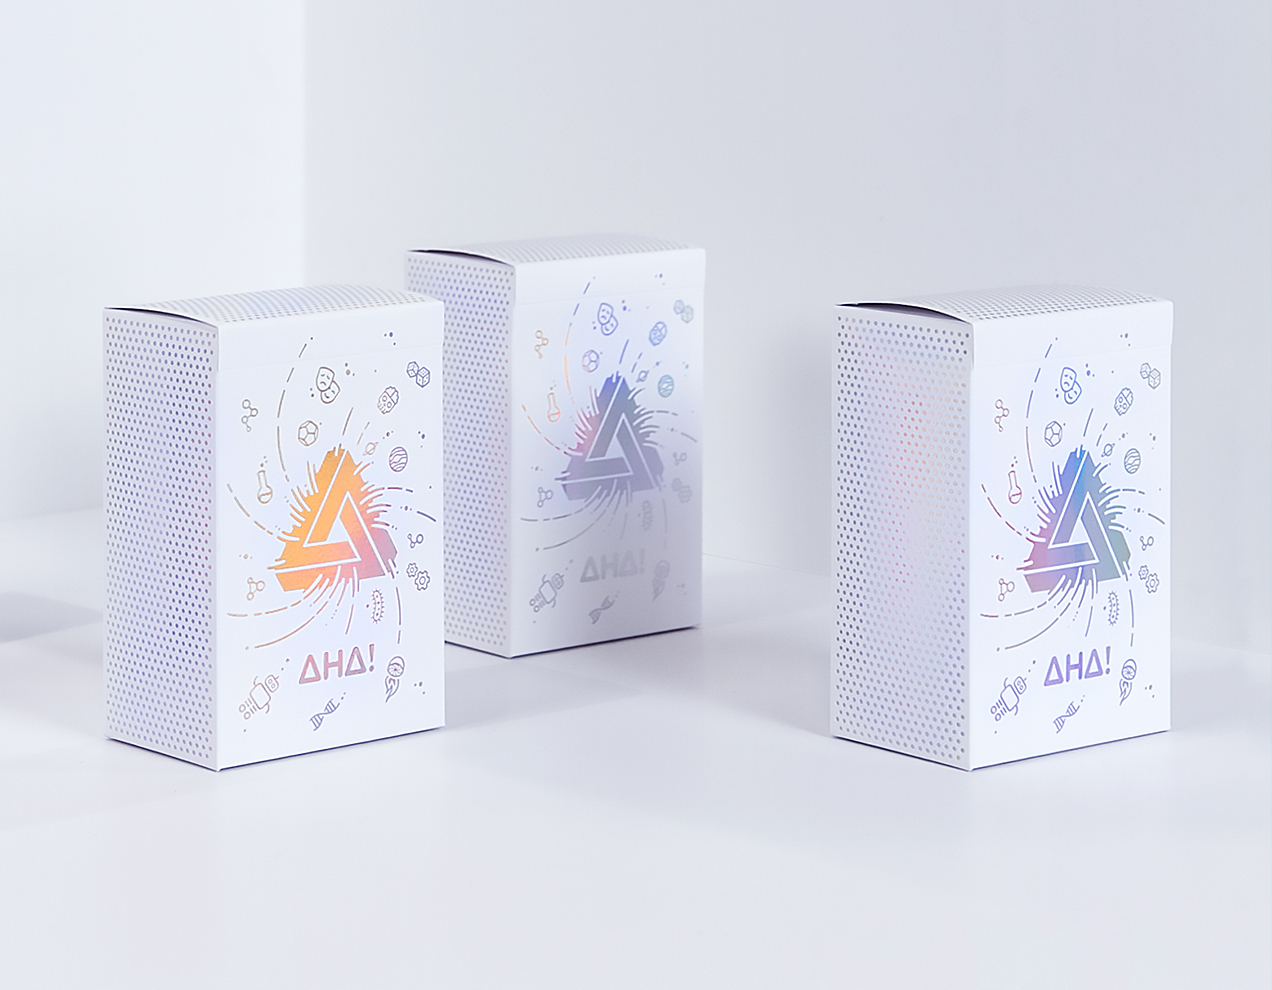 Packaging, Branding and Illustration